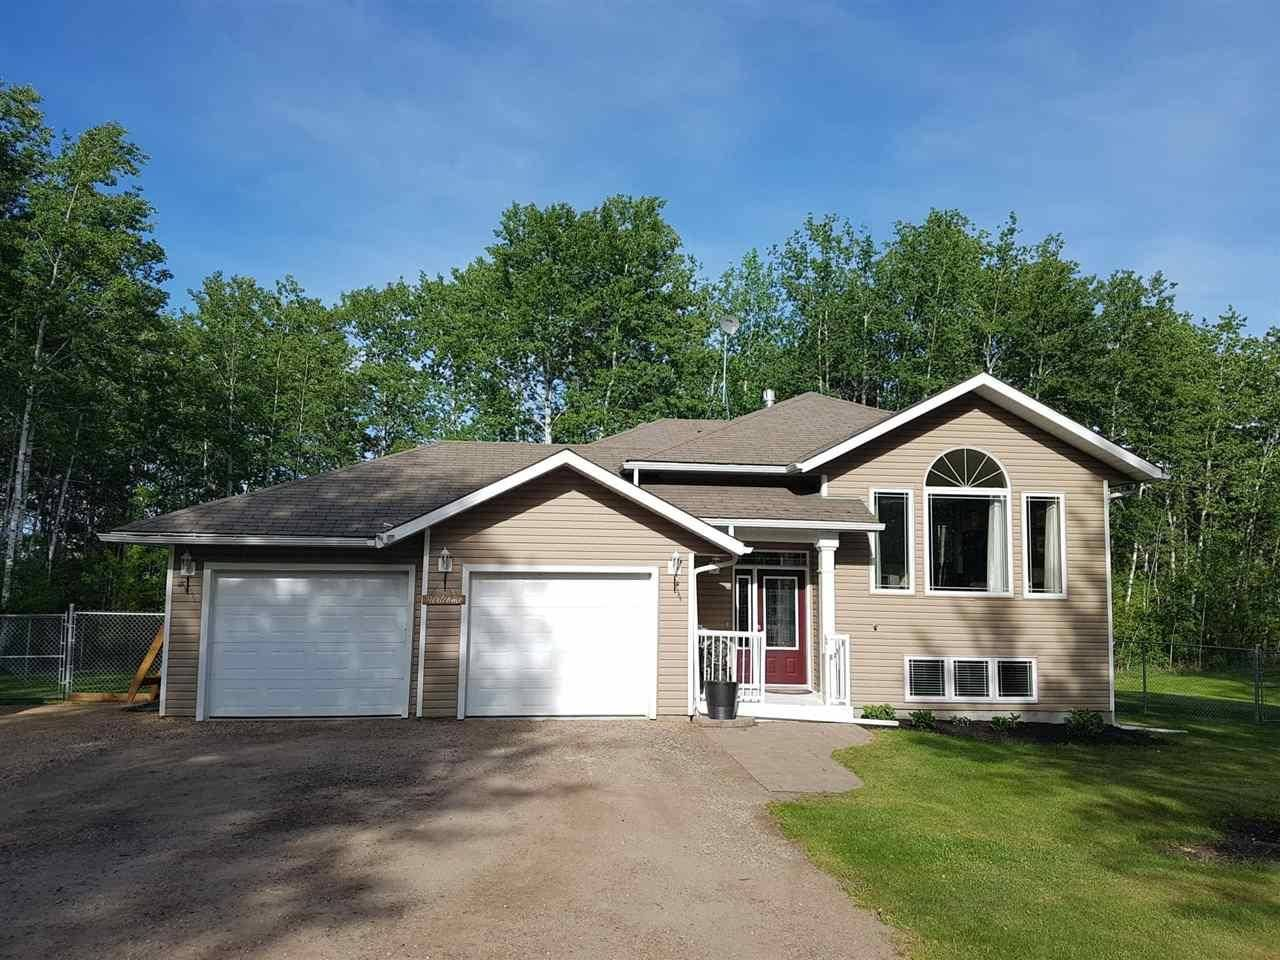 House for sale at 62331 Rge Rd Unit 46 Rural Bonnyville M.d. Alberta - MLS: E4156874